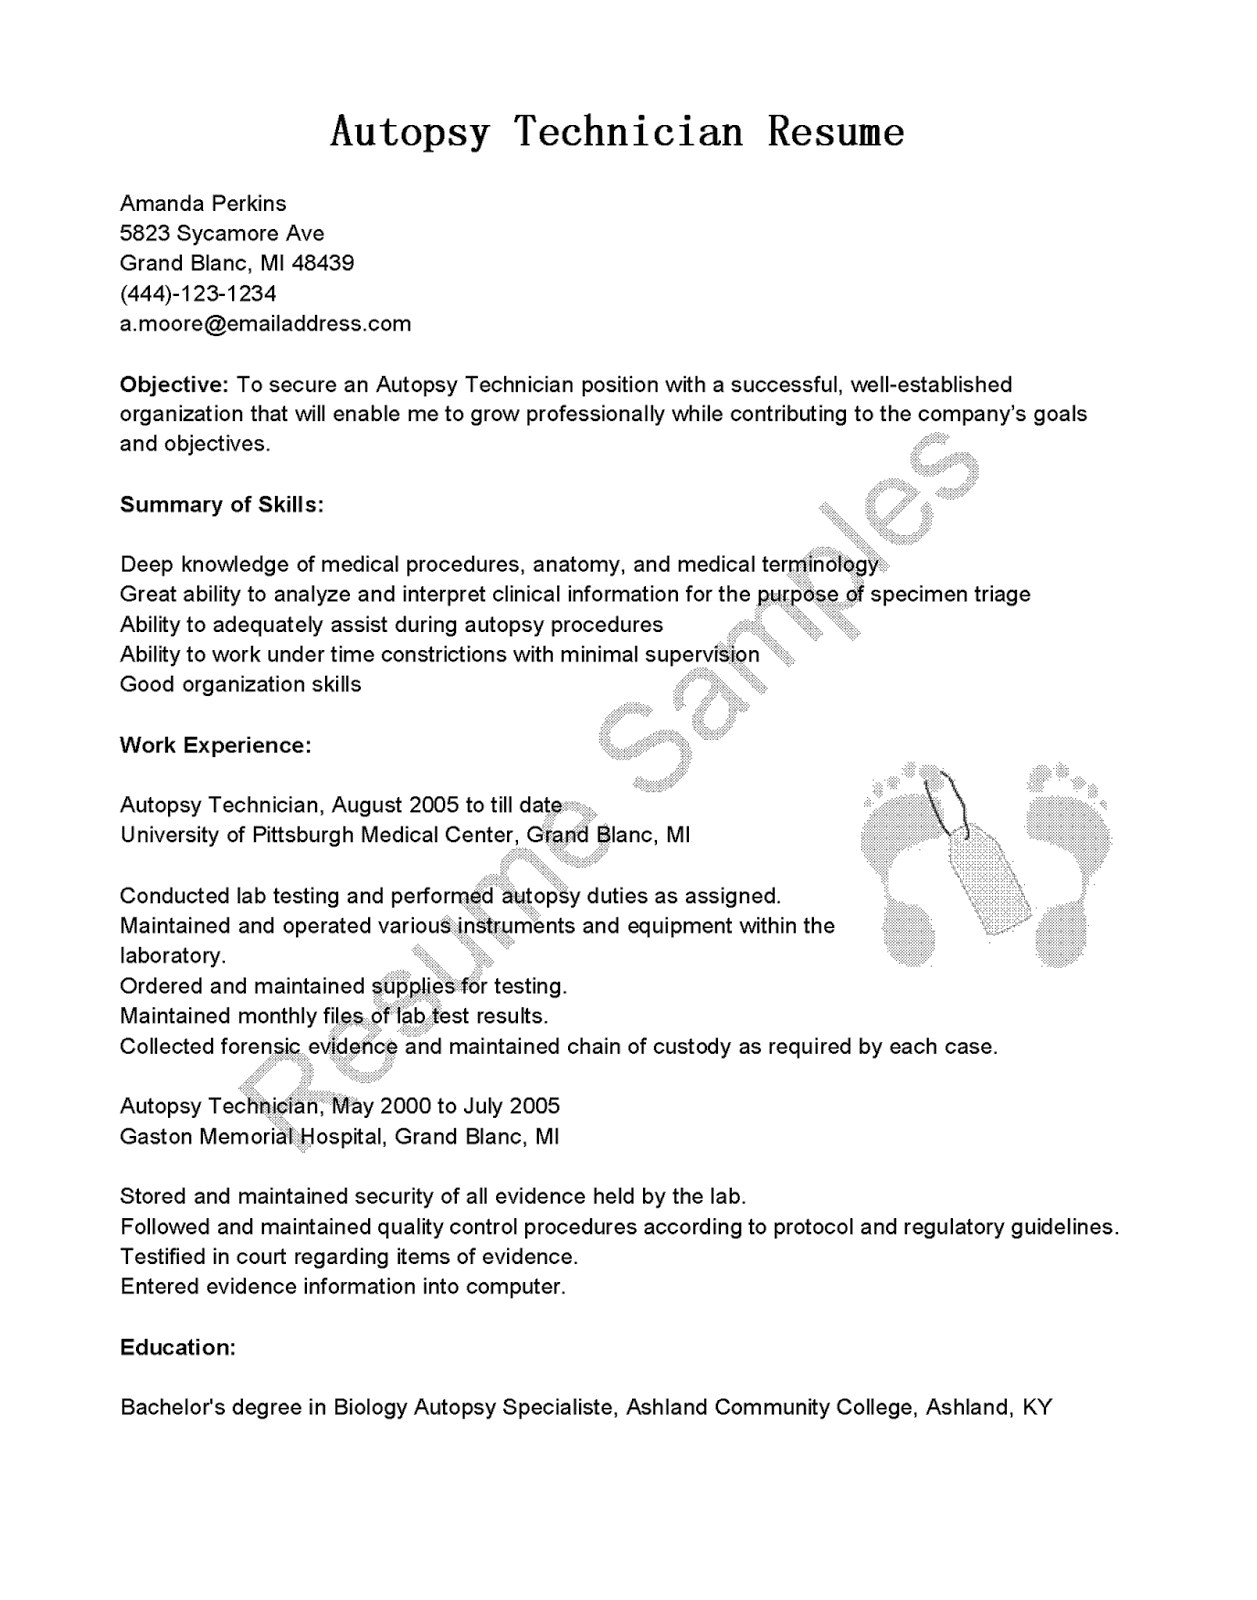 Opening Statement for Resume - 37 Design Examples Professional Resumes